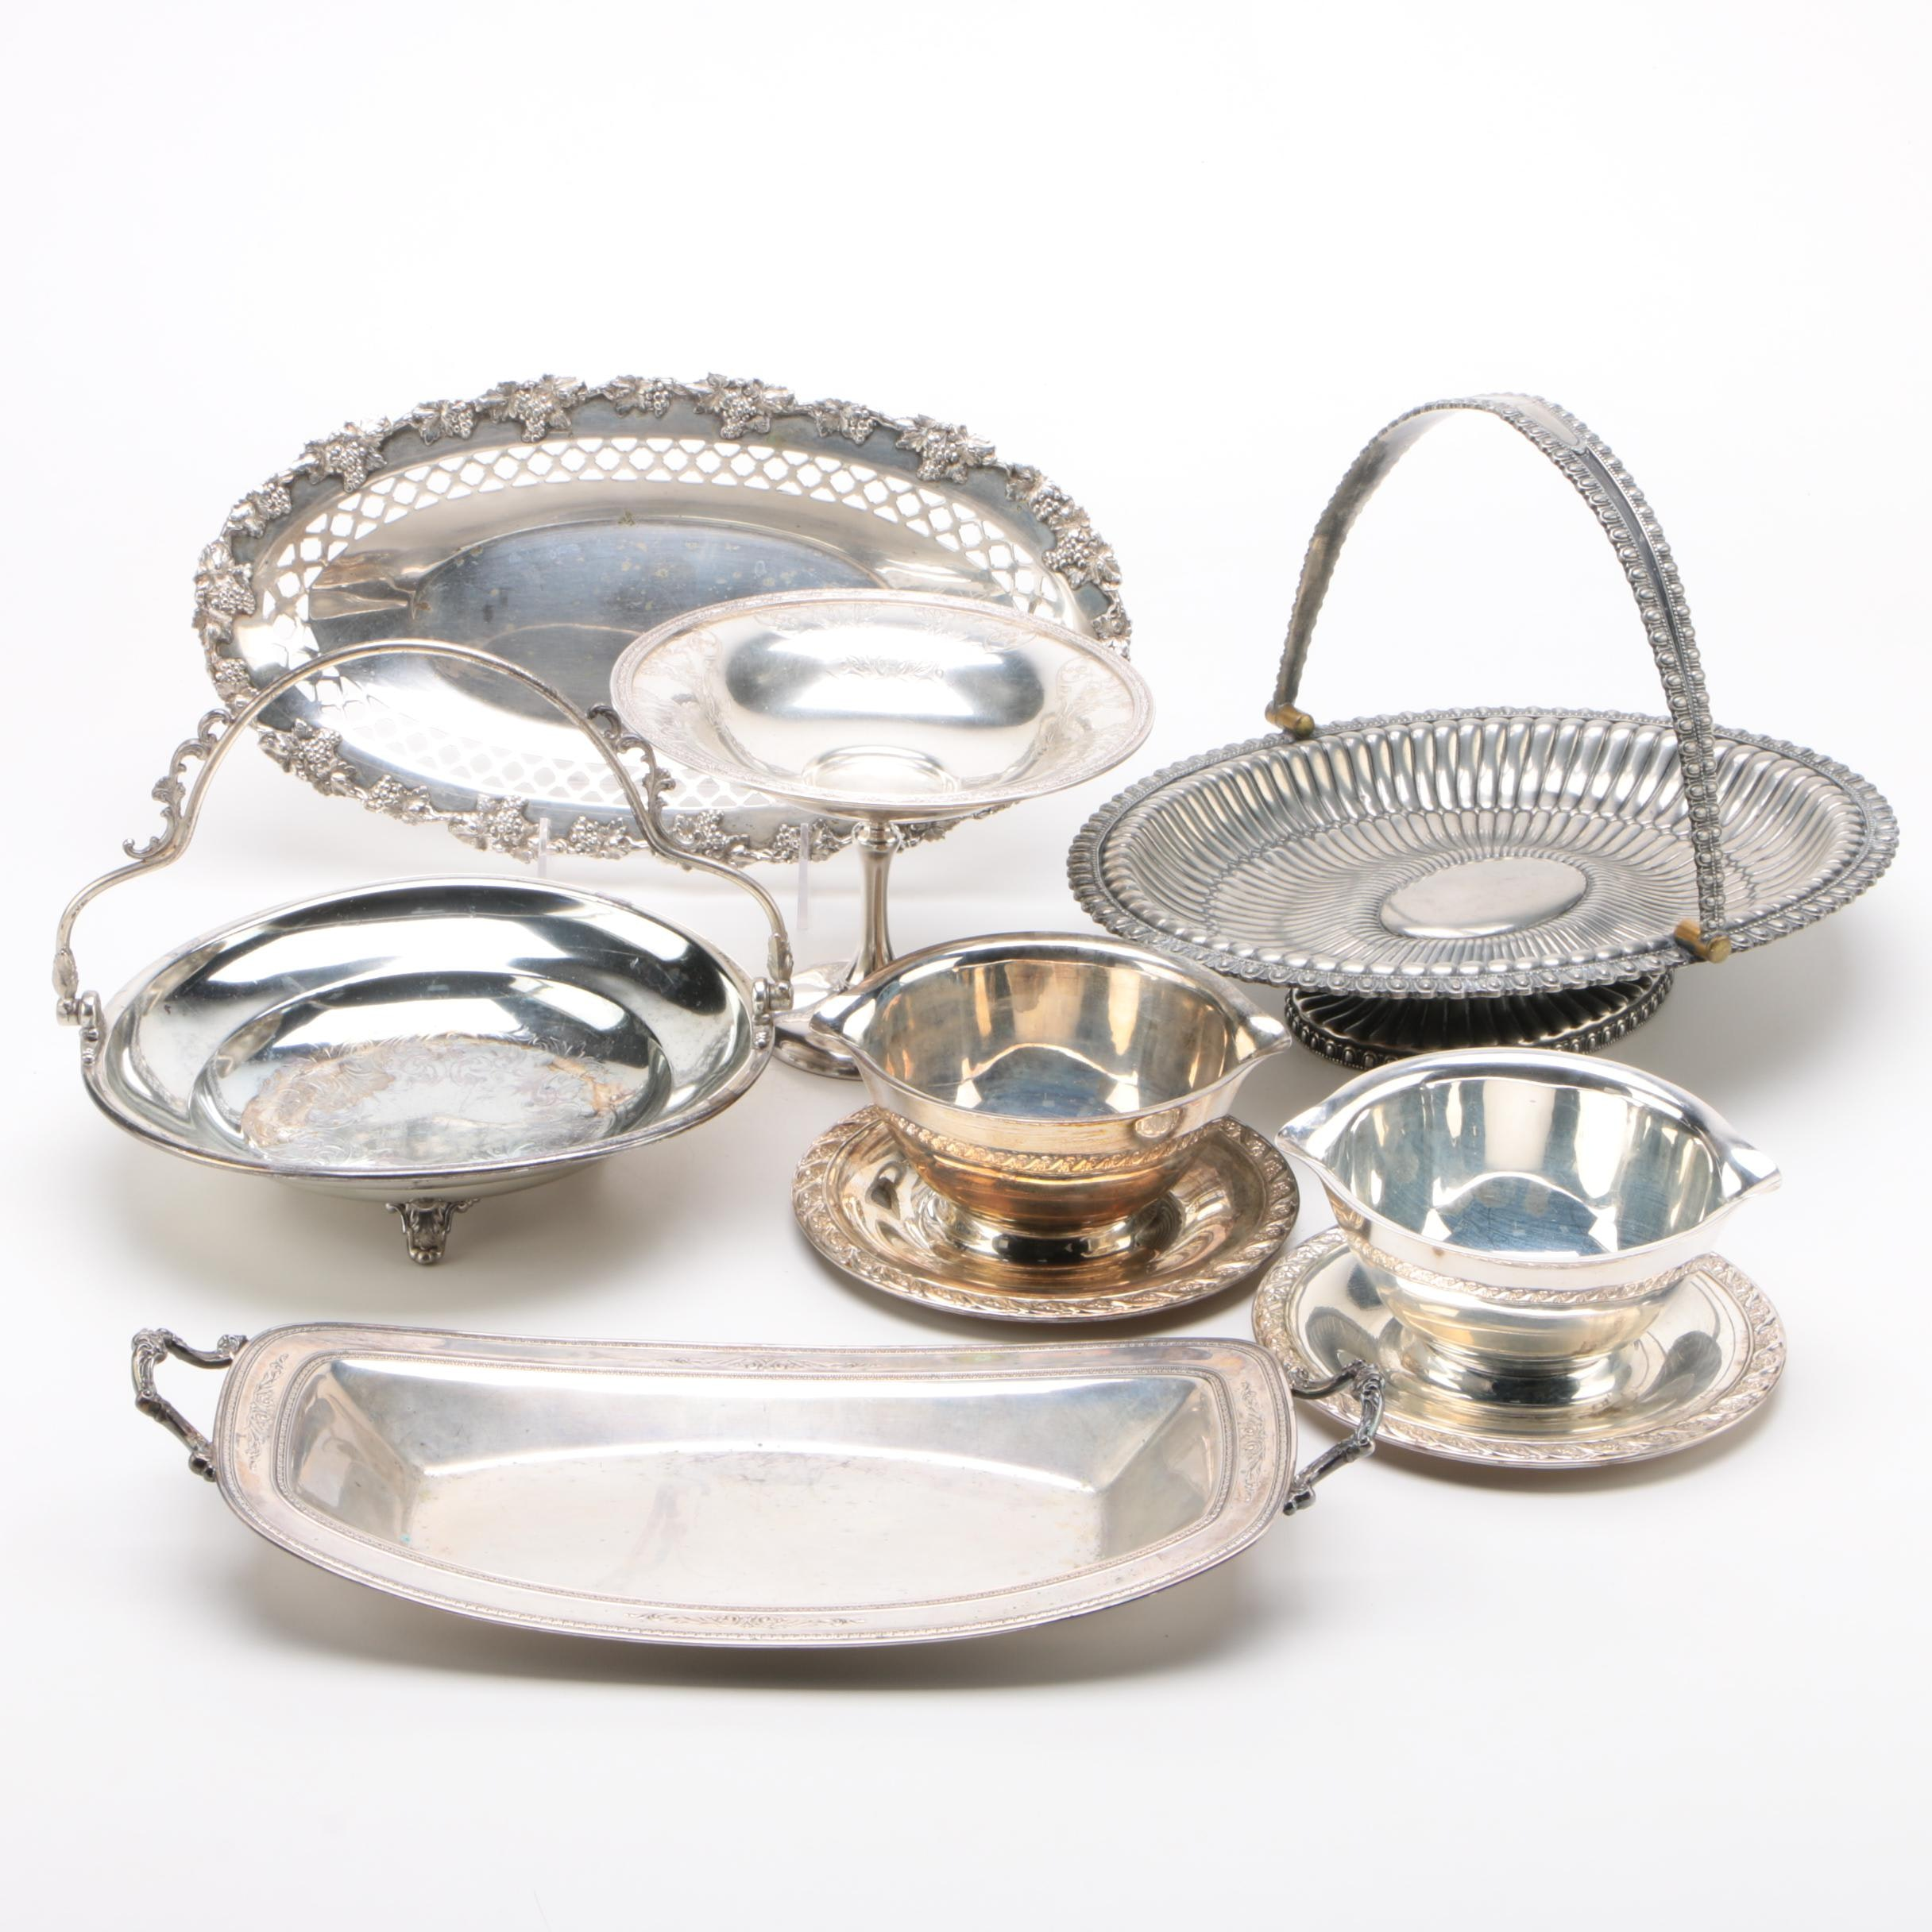 Neoclassical Egg and Dart Rimmed Basket with Silver Plate Serveware